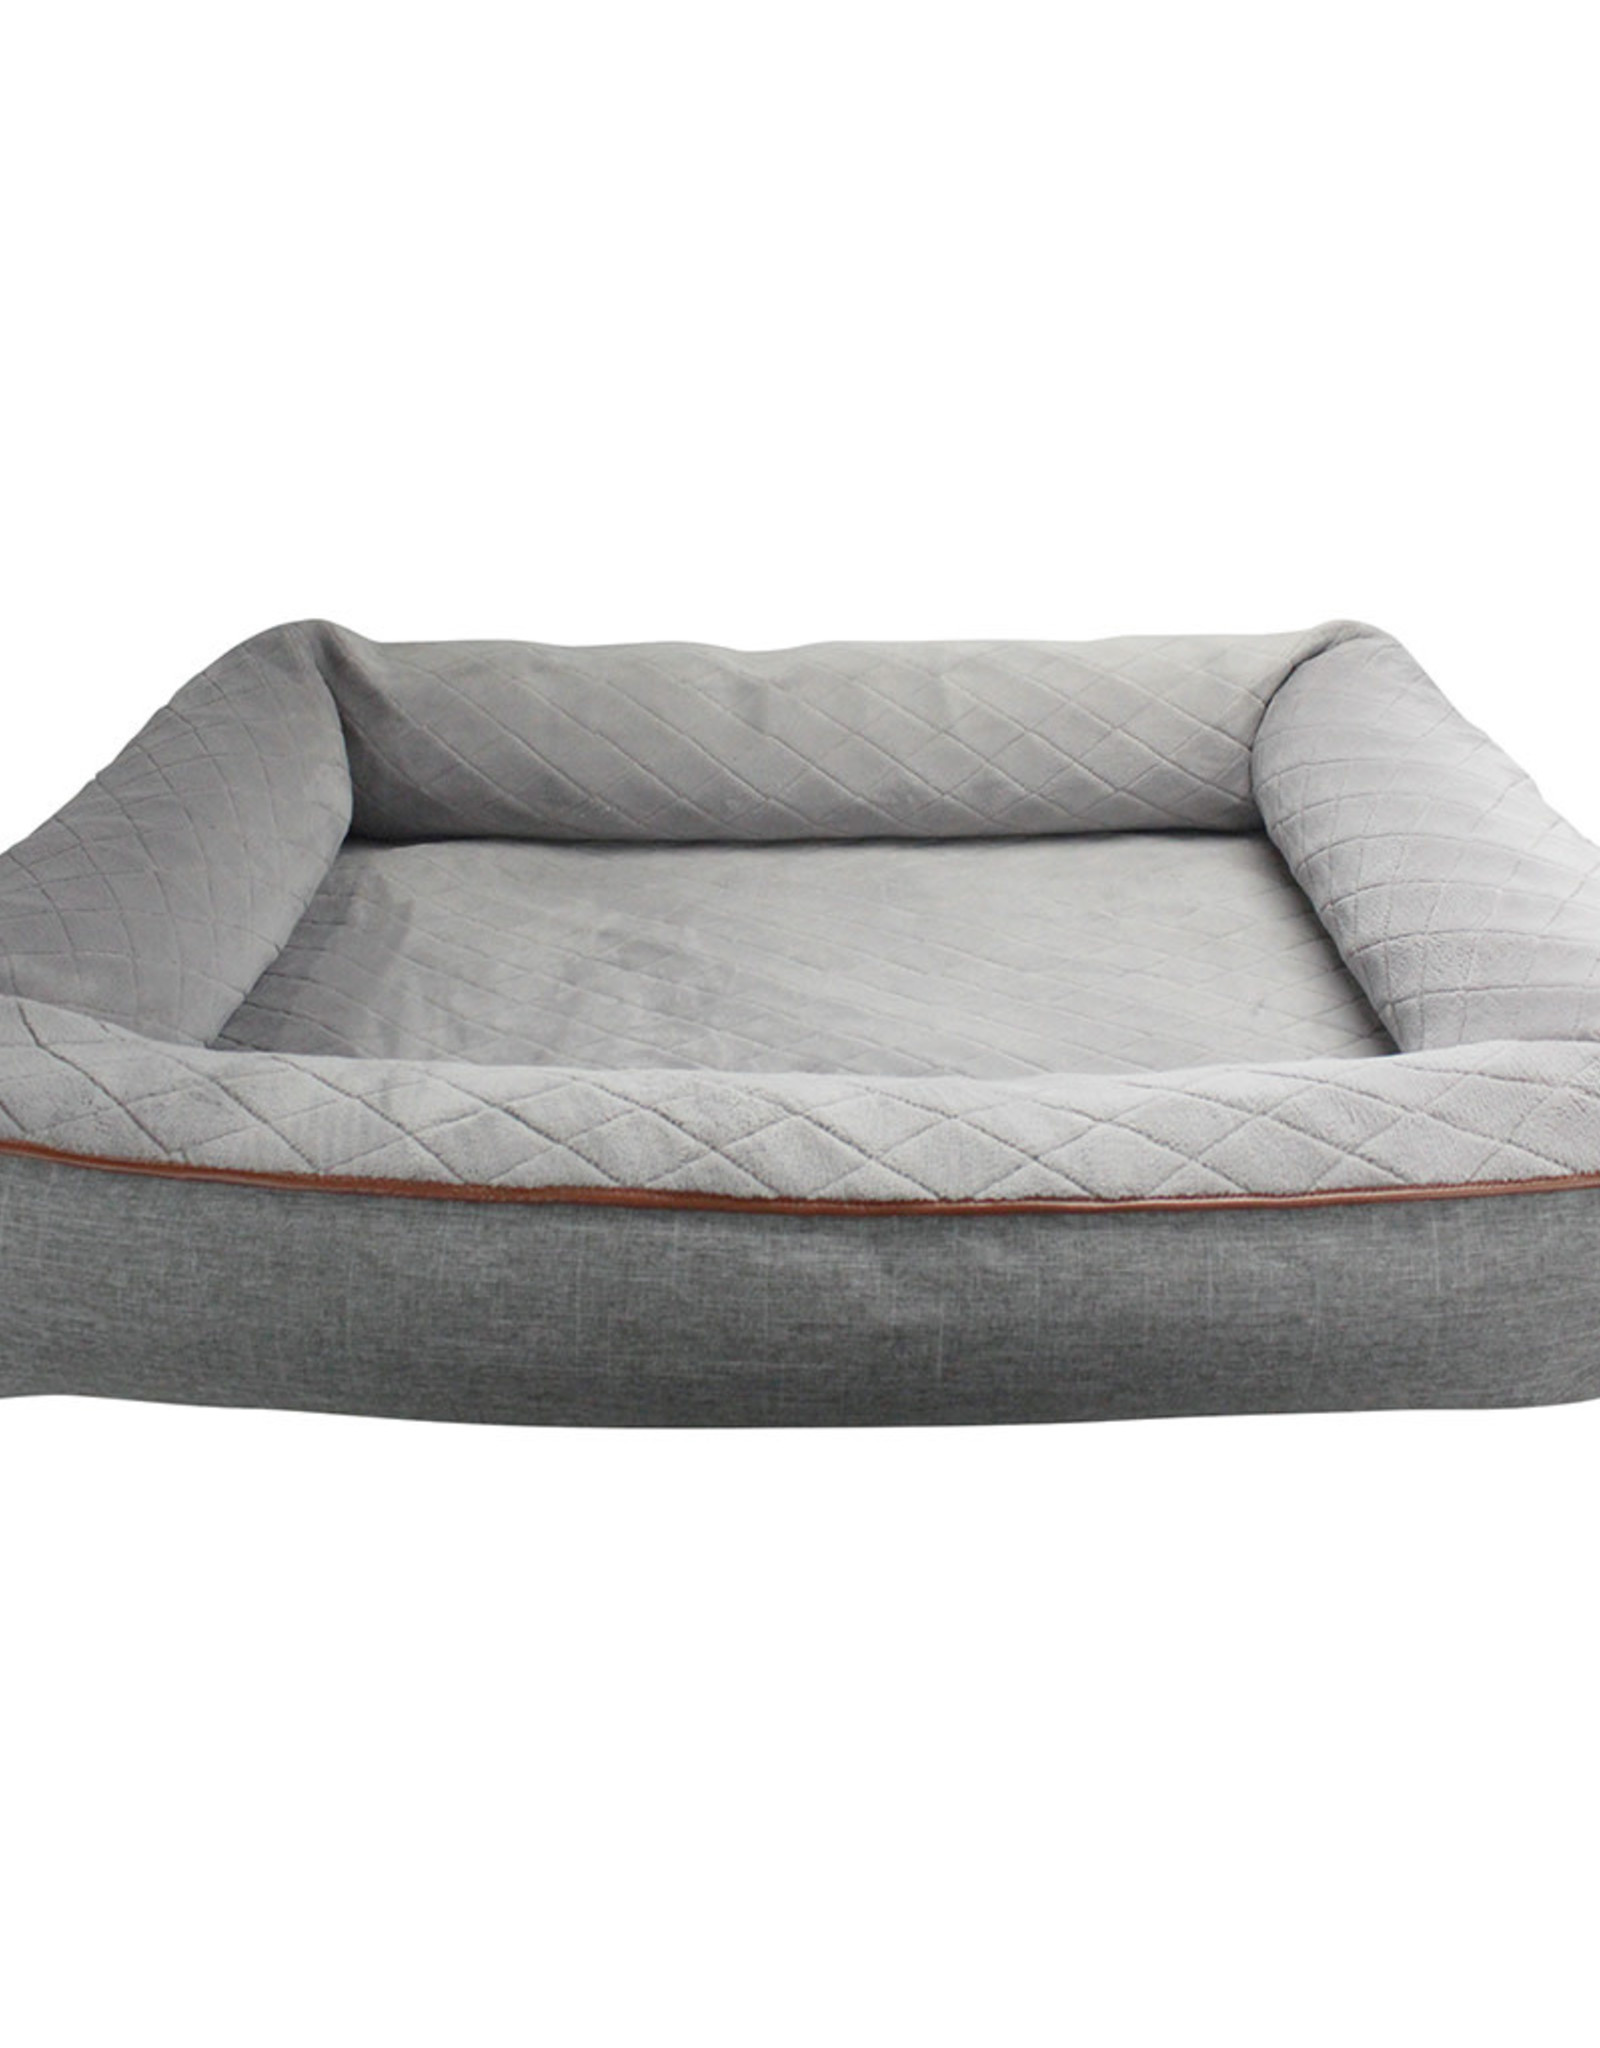 BE ONE BREED BE ONE BREED Snuggle Bed Gray Medium/Large 32x40